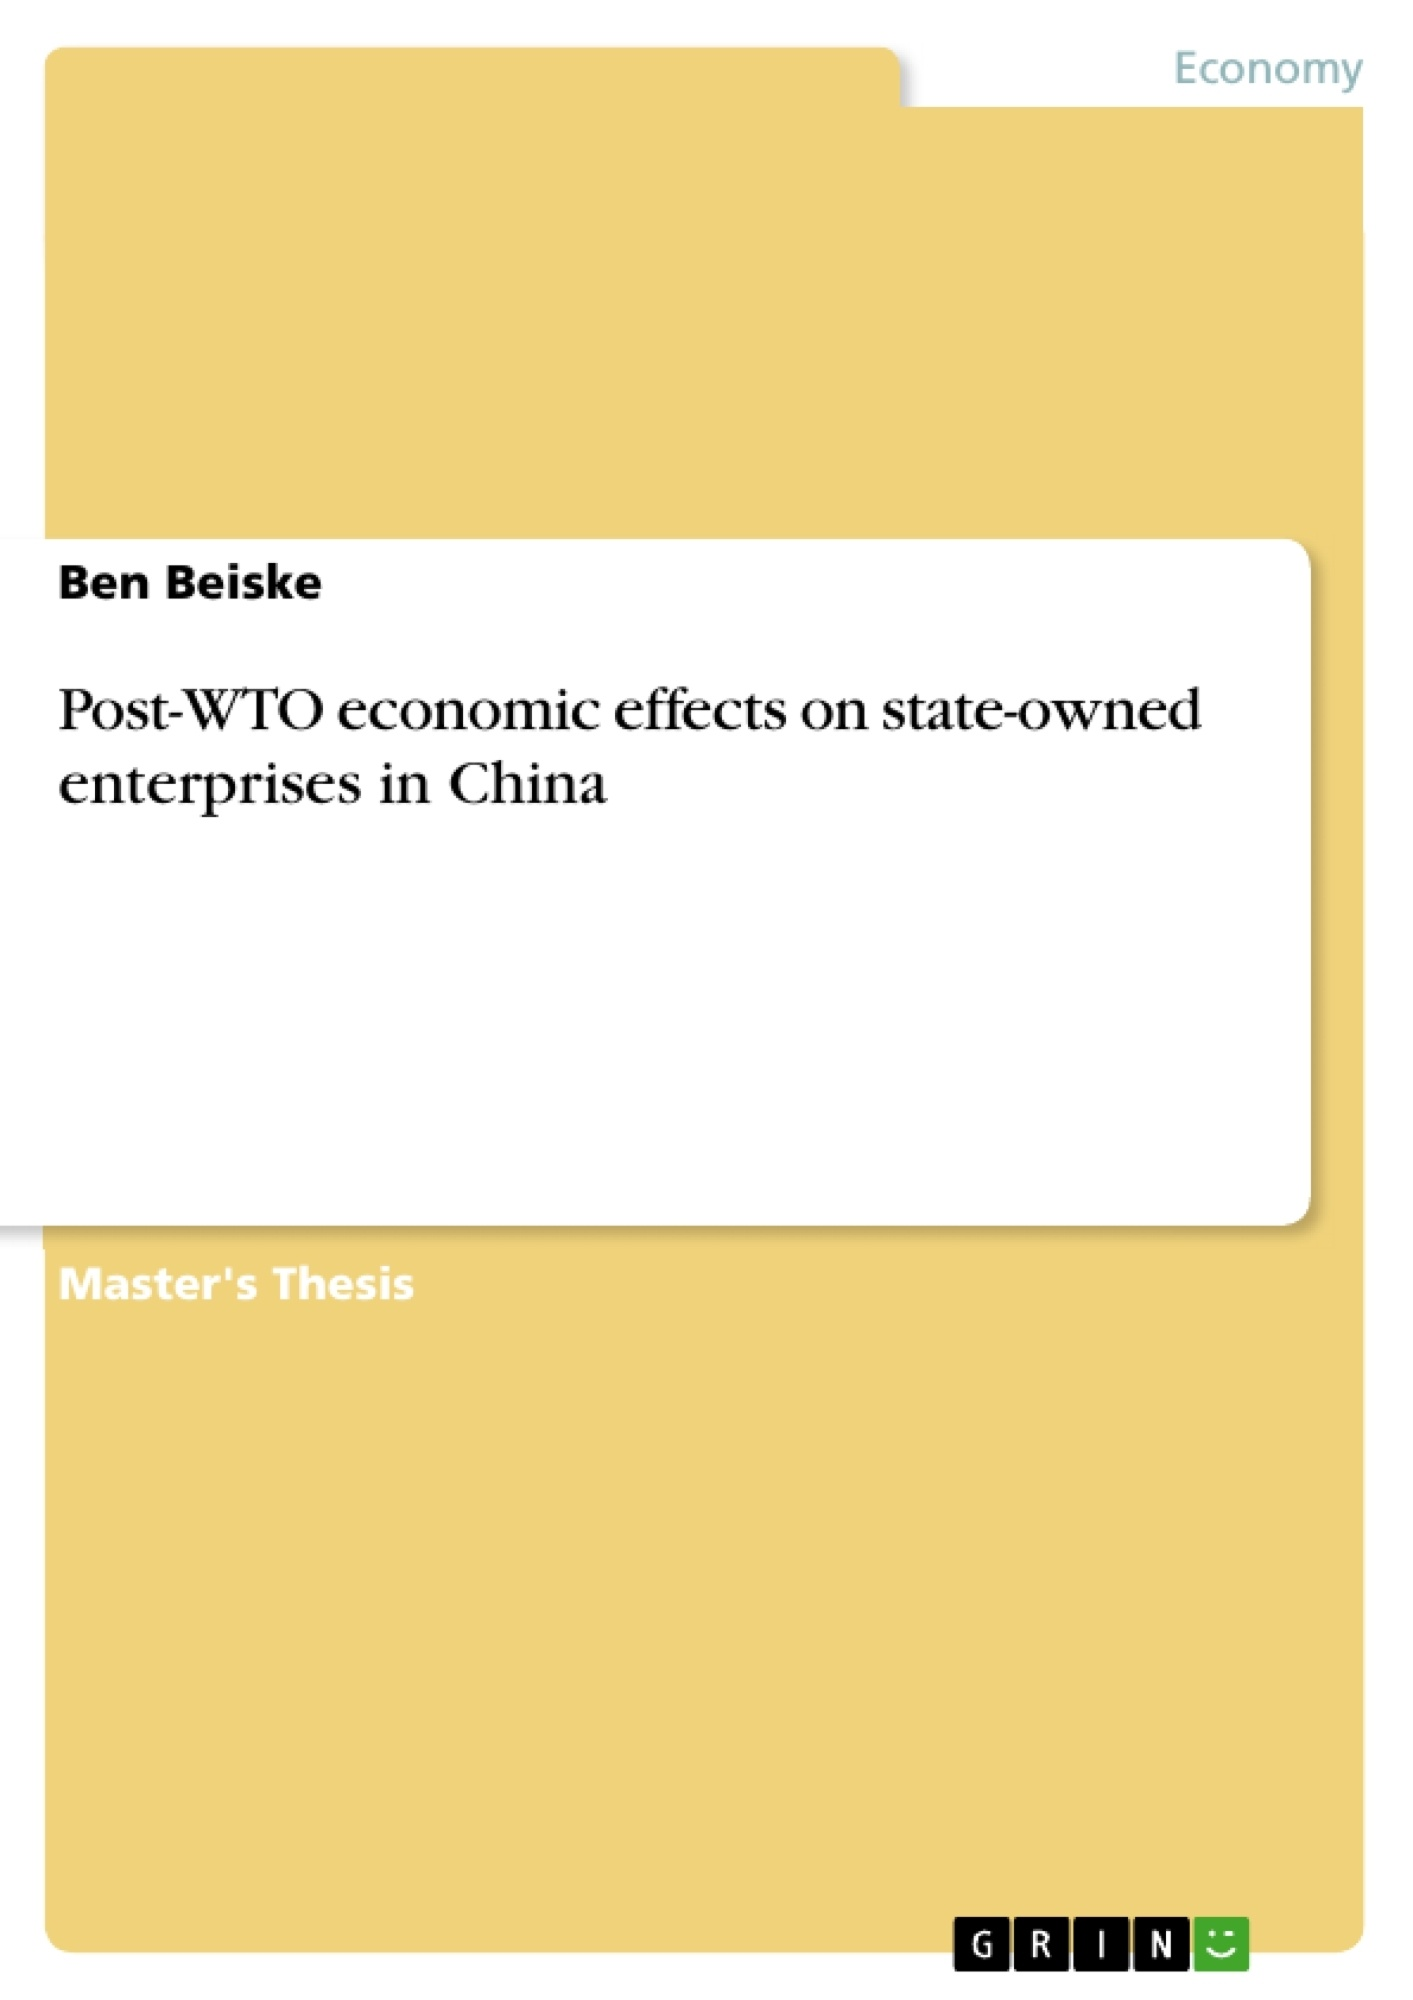 Title: Post-WTO economic effects on state-owned enterprises in China